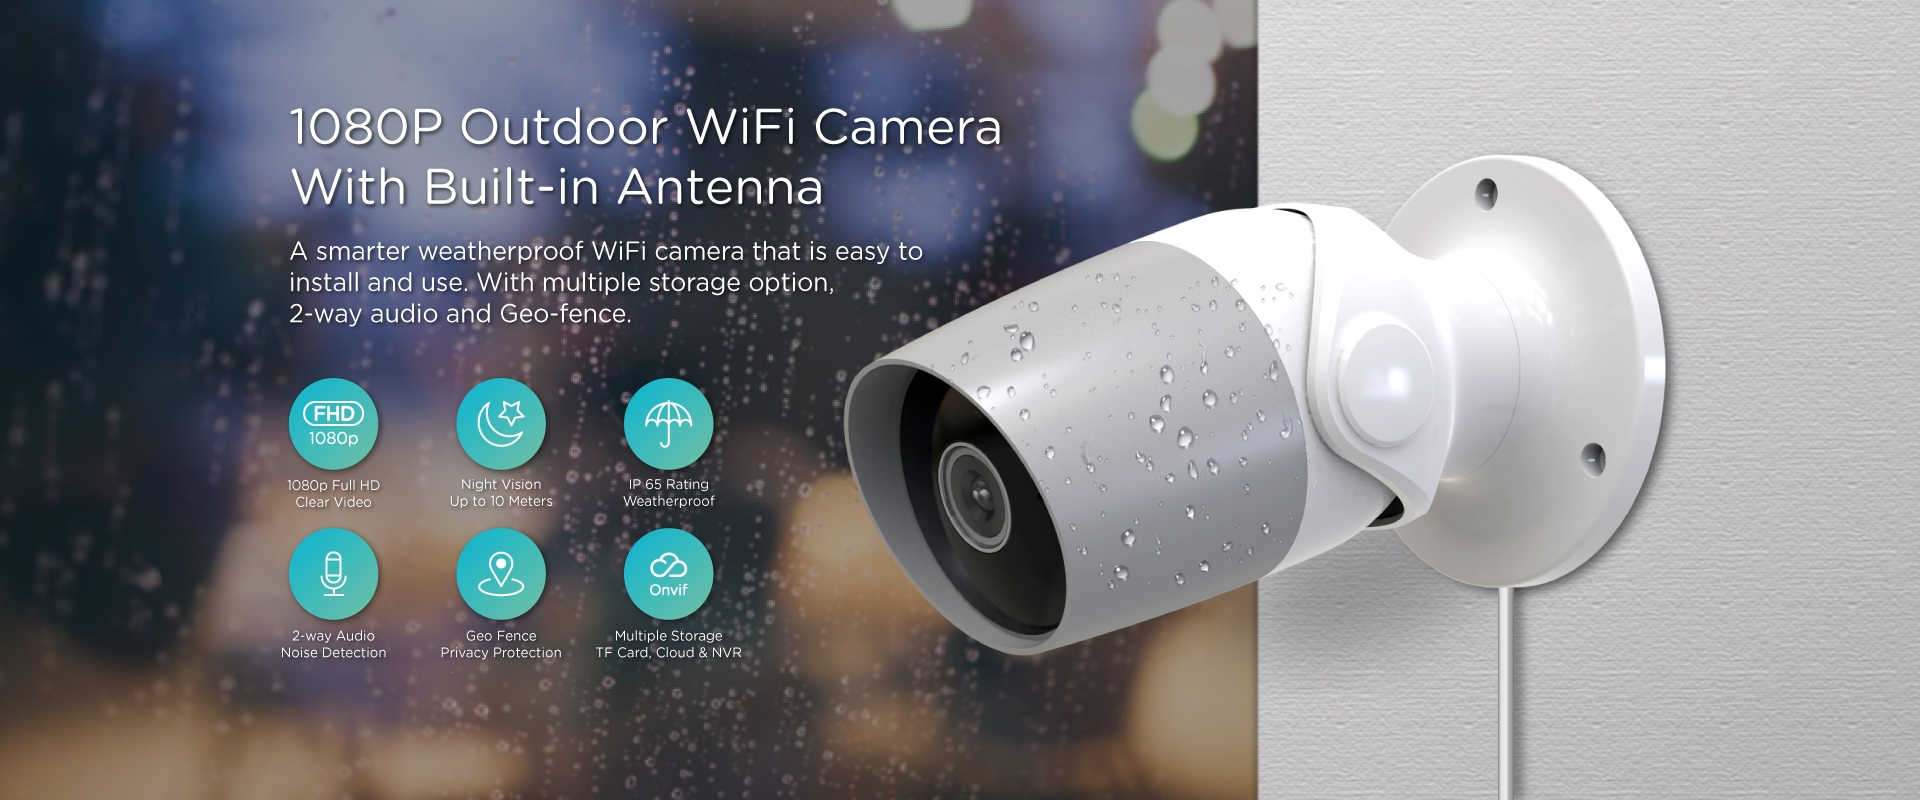 Smart Home Camera WiFi - 2 megapixel 1080P Outdoor Weatherproof with Geo Fencing